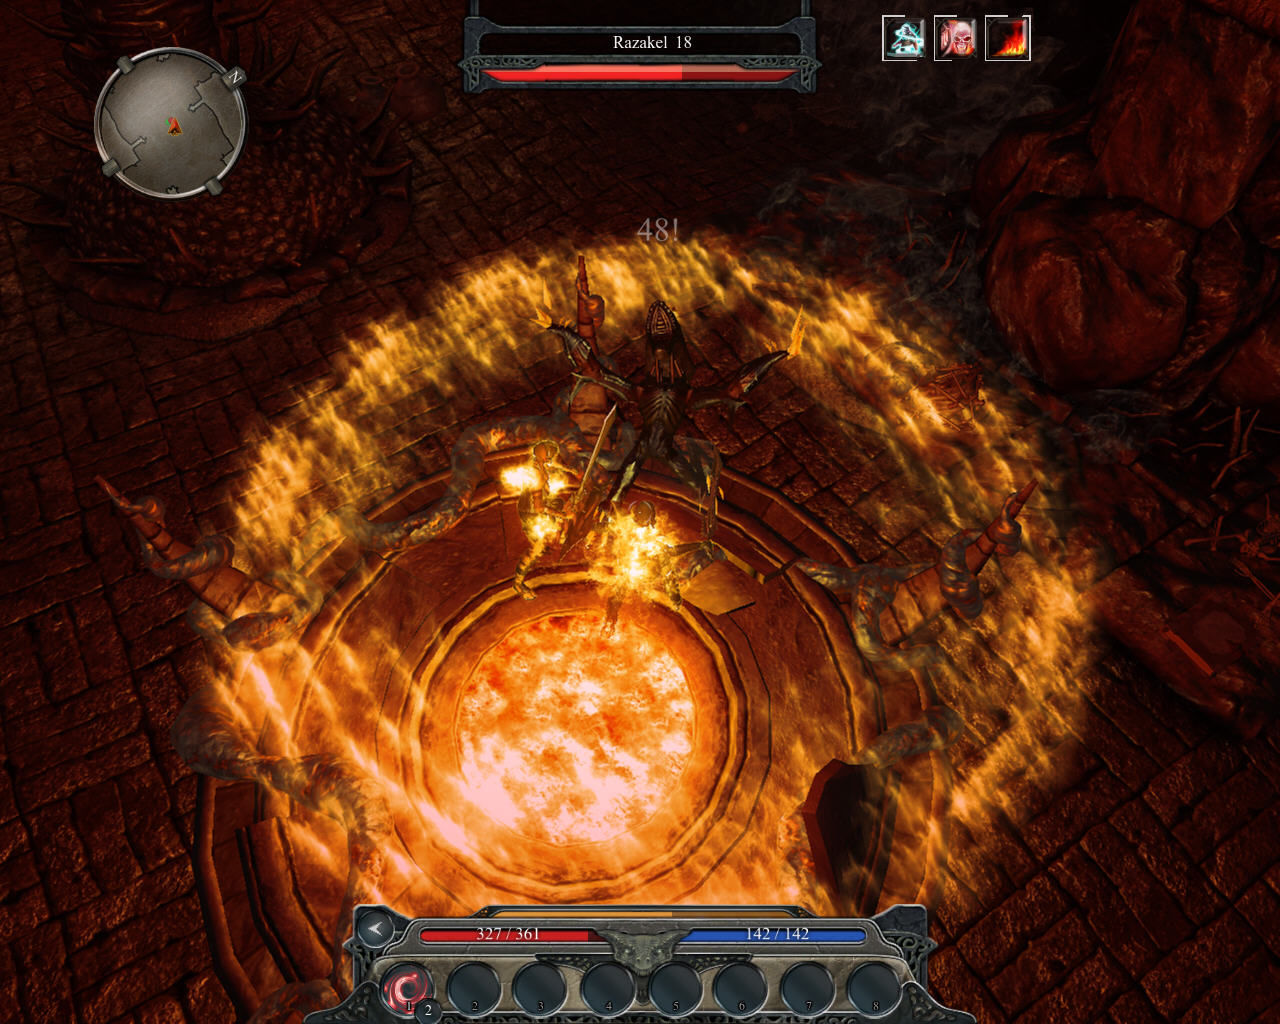 Divinity II: Ego Draconis Windows Boss fight. This demon casts fiery spells on me and my companion Sassan